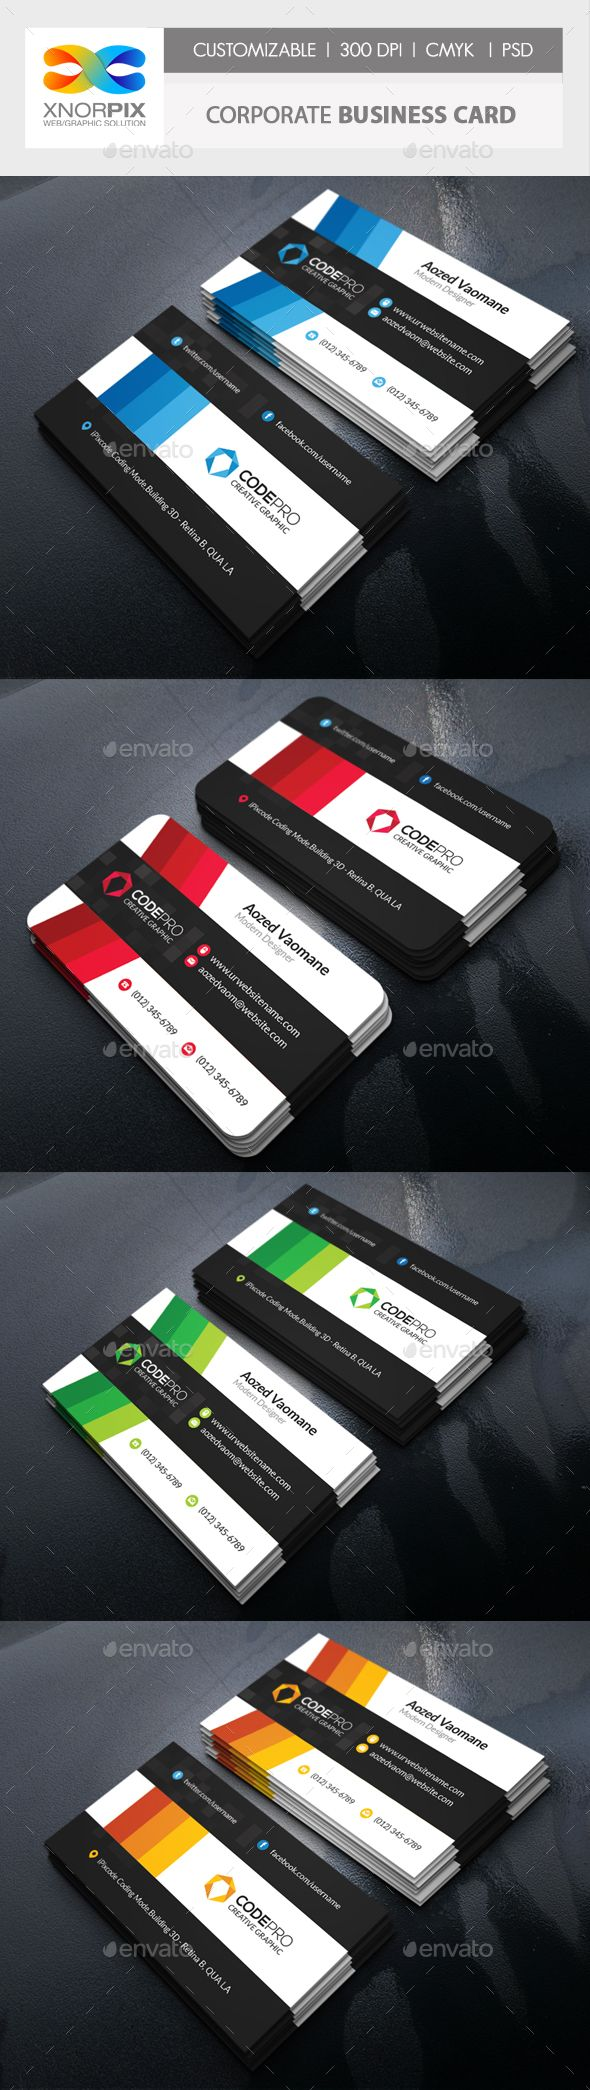 Corporate Business Card - #Corporate #Business #Cards Download here: https://graphicriver.net/item/corporate-business-card/19495030?ref=alena994